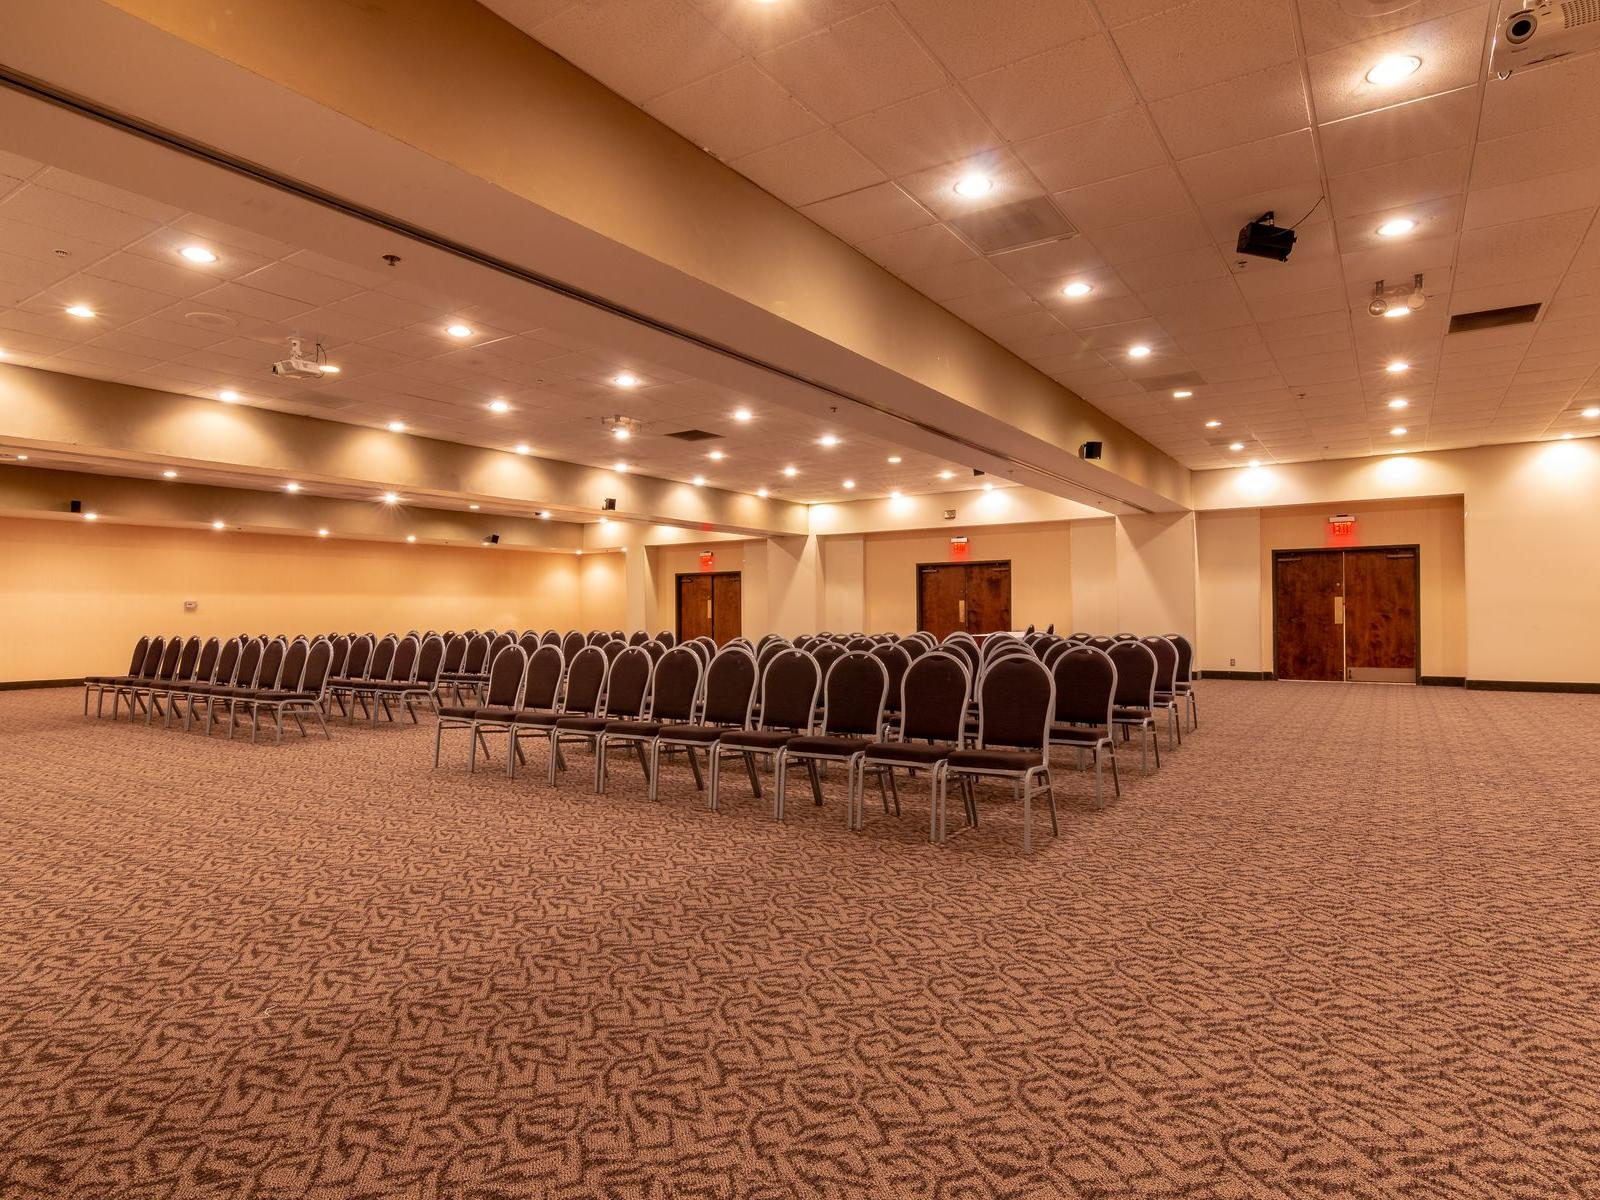 Large ballroom with seating and podium.